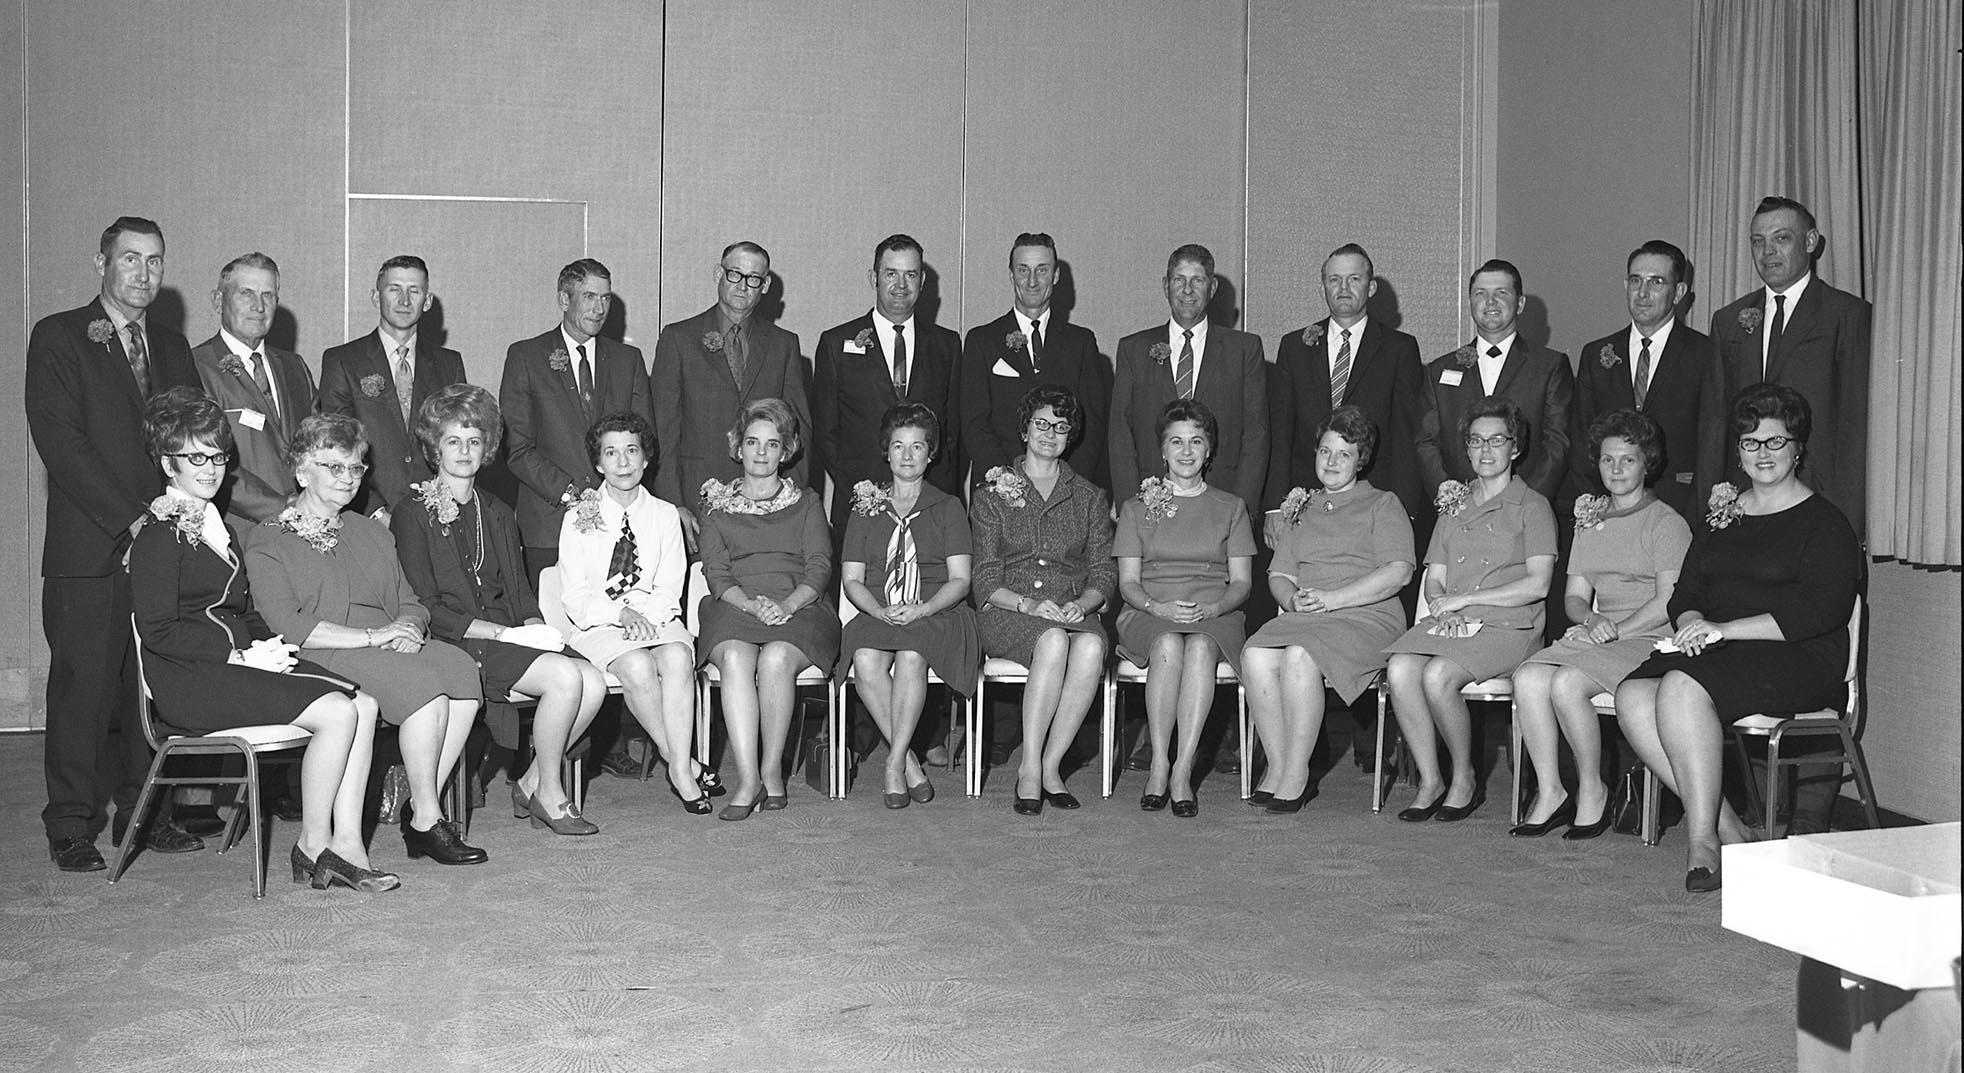 The 12 Farm Families of the Year candidates for 1969 pose for a group photo. Entries from across the state came from the counties of Alfalfa, Atoka, Beaver, Caddo, Cimarron, Cotton, Grady, Kiowa, Logan, Noble, Oklahoma and Tulsa. Sponsored by the Oklahoma Farm Bureau Women, the Farm Family of the Year award was created in 1957 in an effort to recognize outstanding families in Oklahoma who dedicated their life to agriculture.